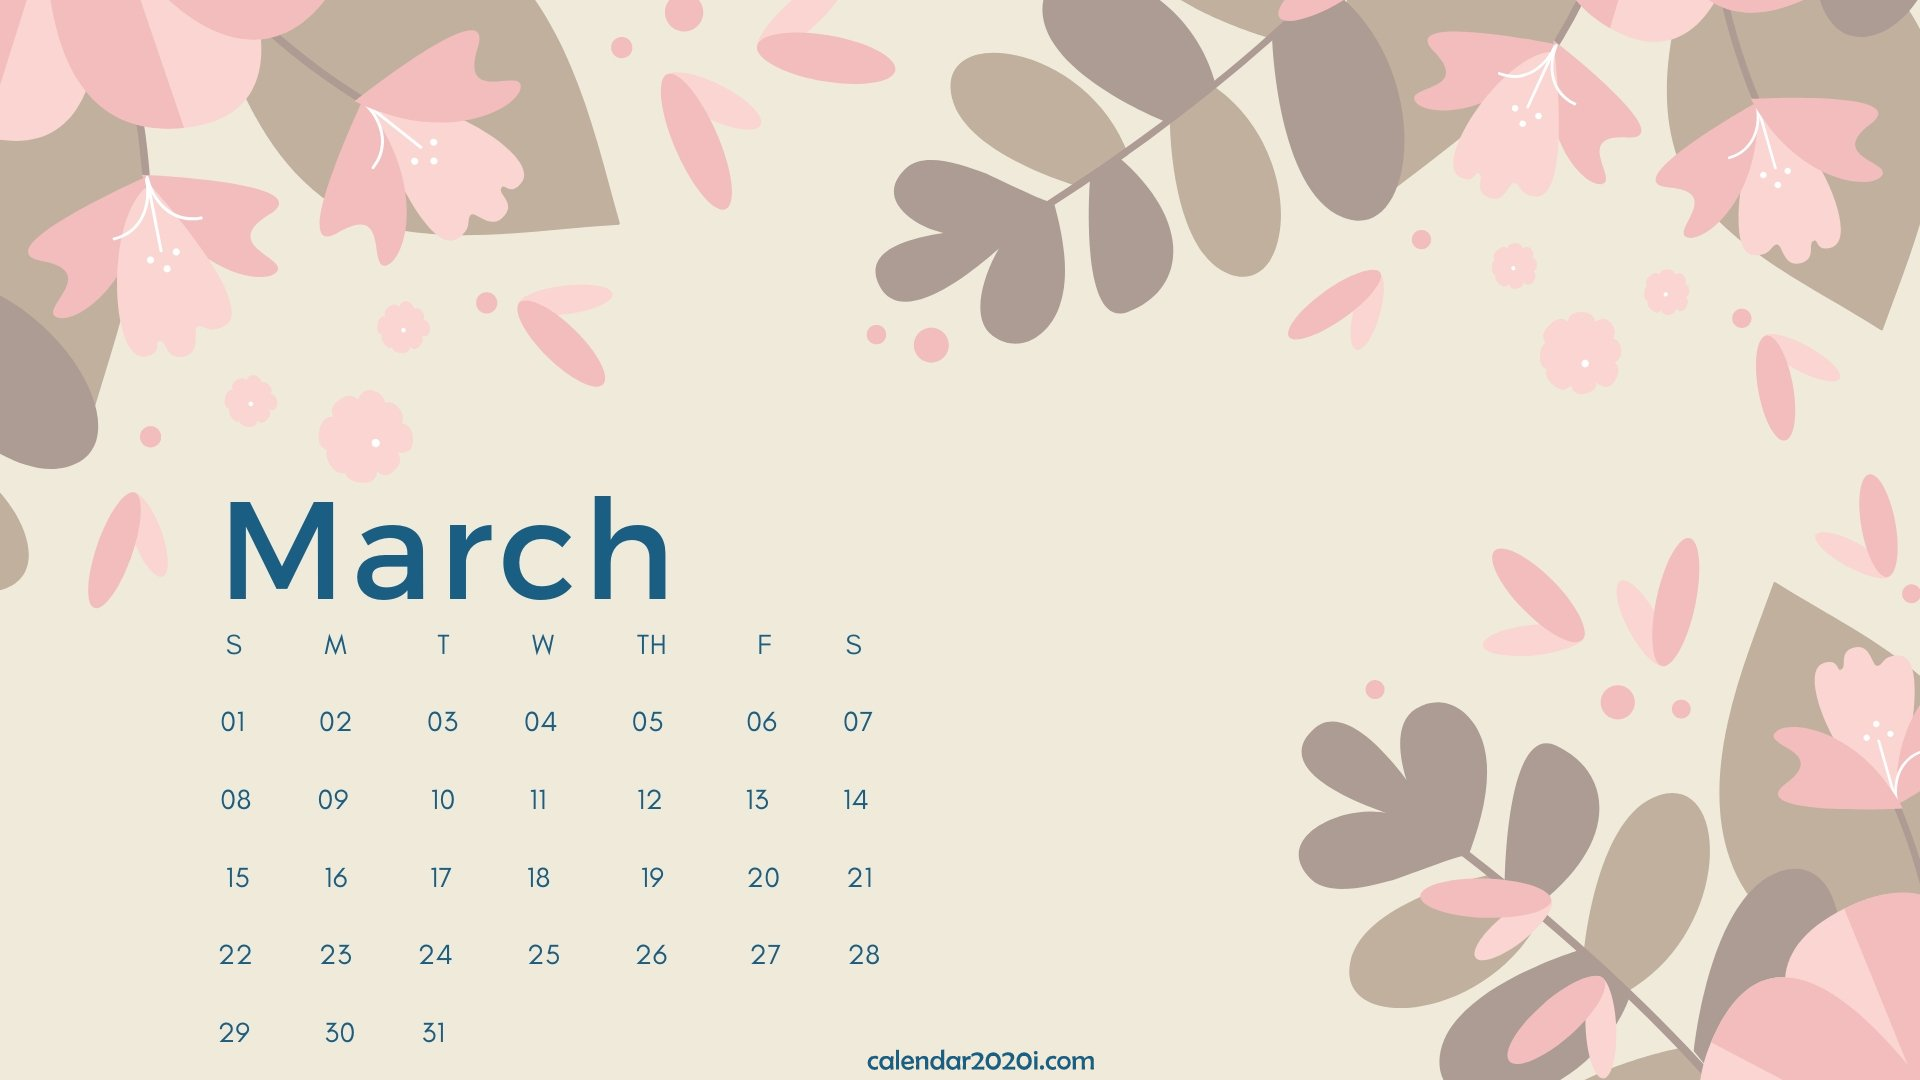 53] Calendar 2020 Wallpapers on WallpaperSafari 1920x1080